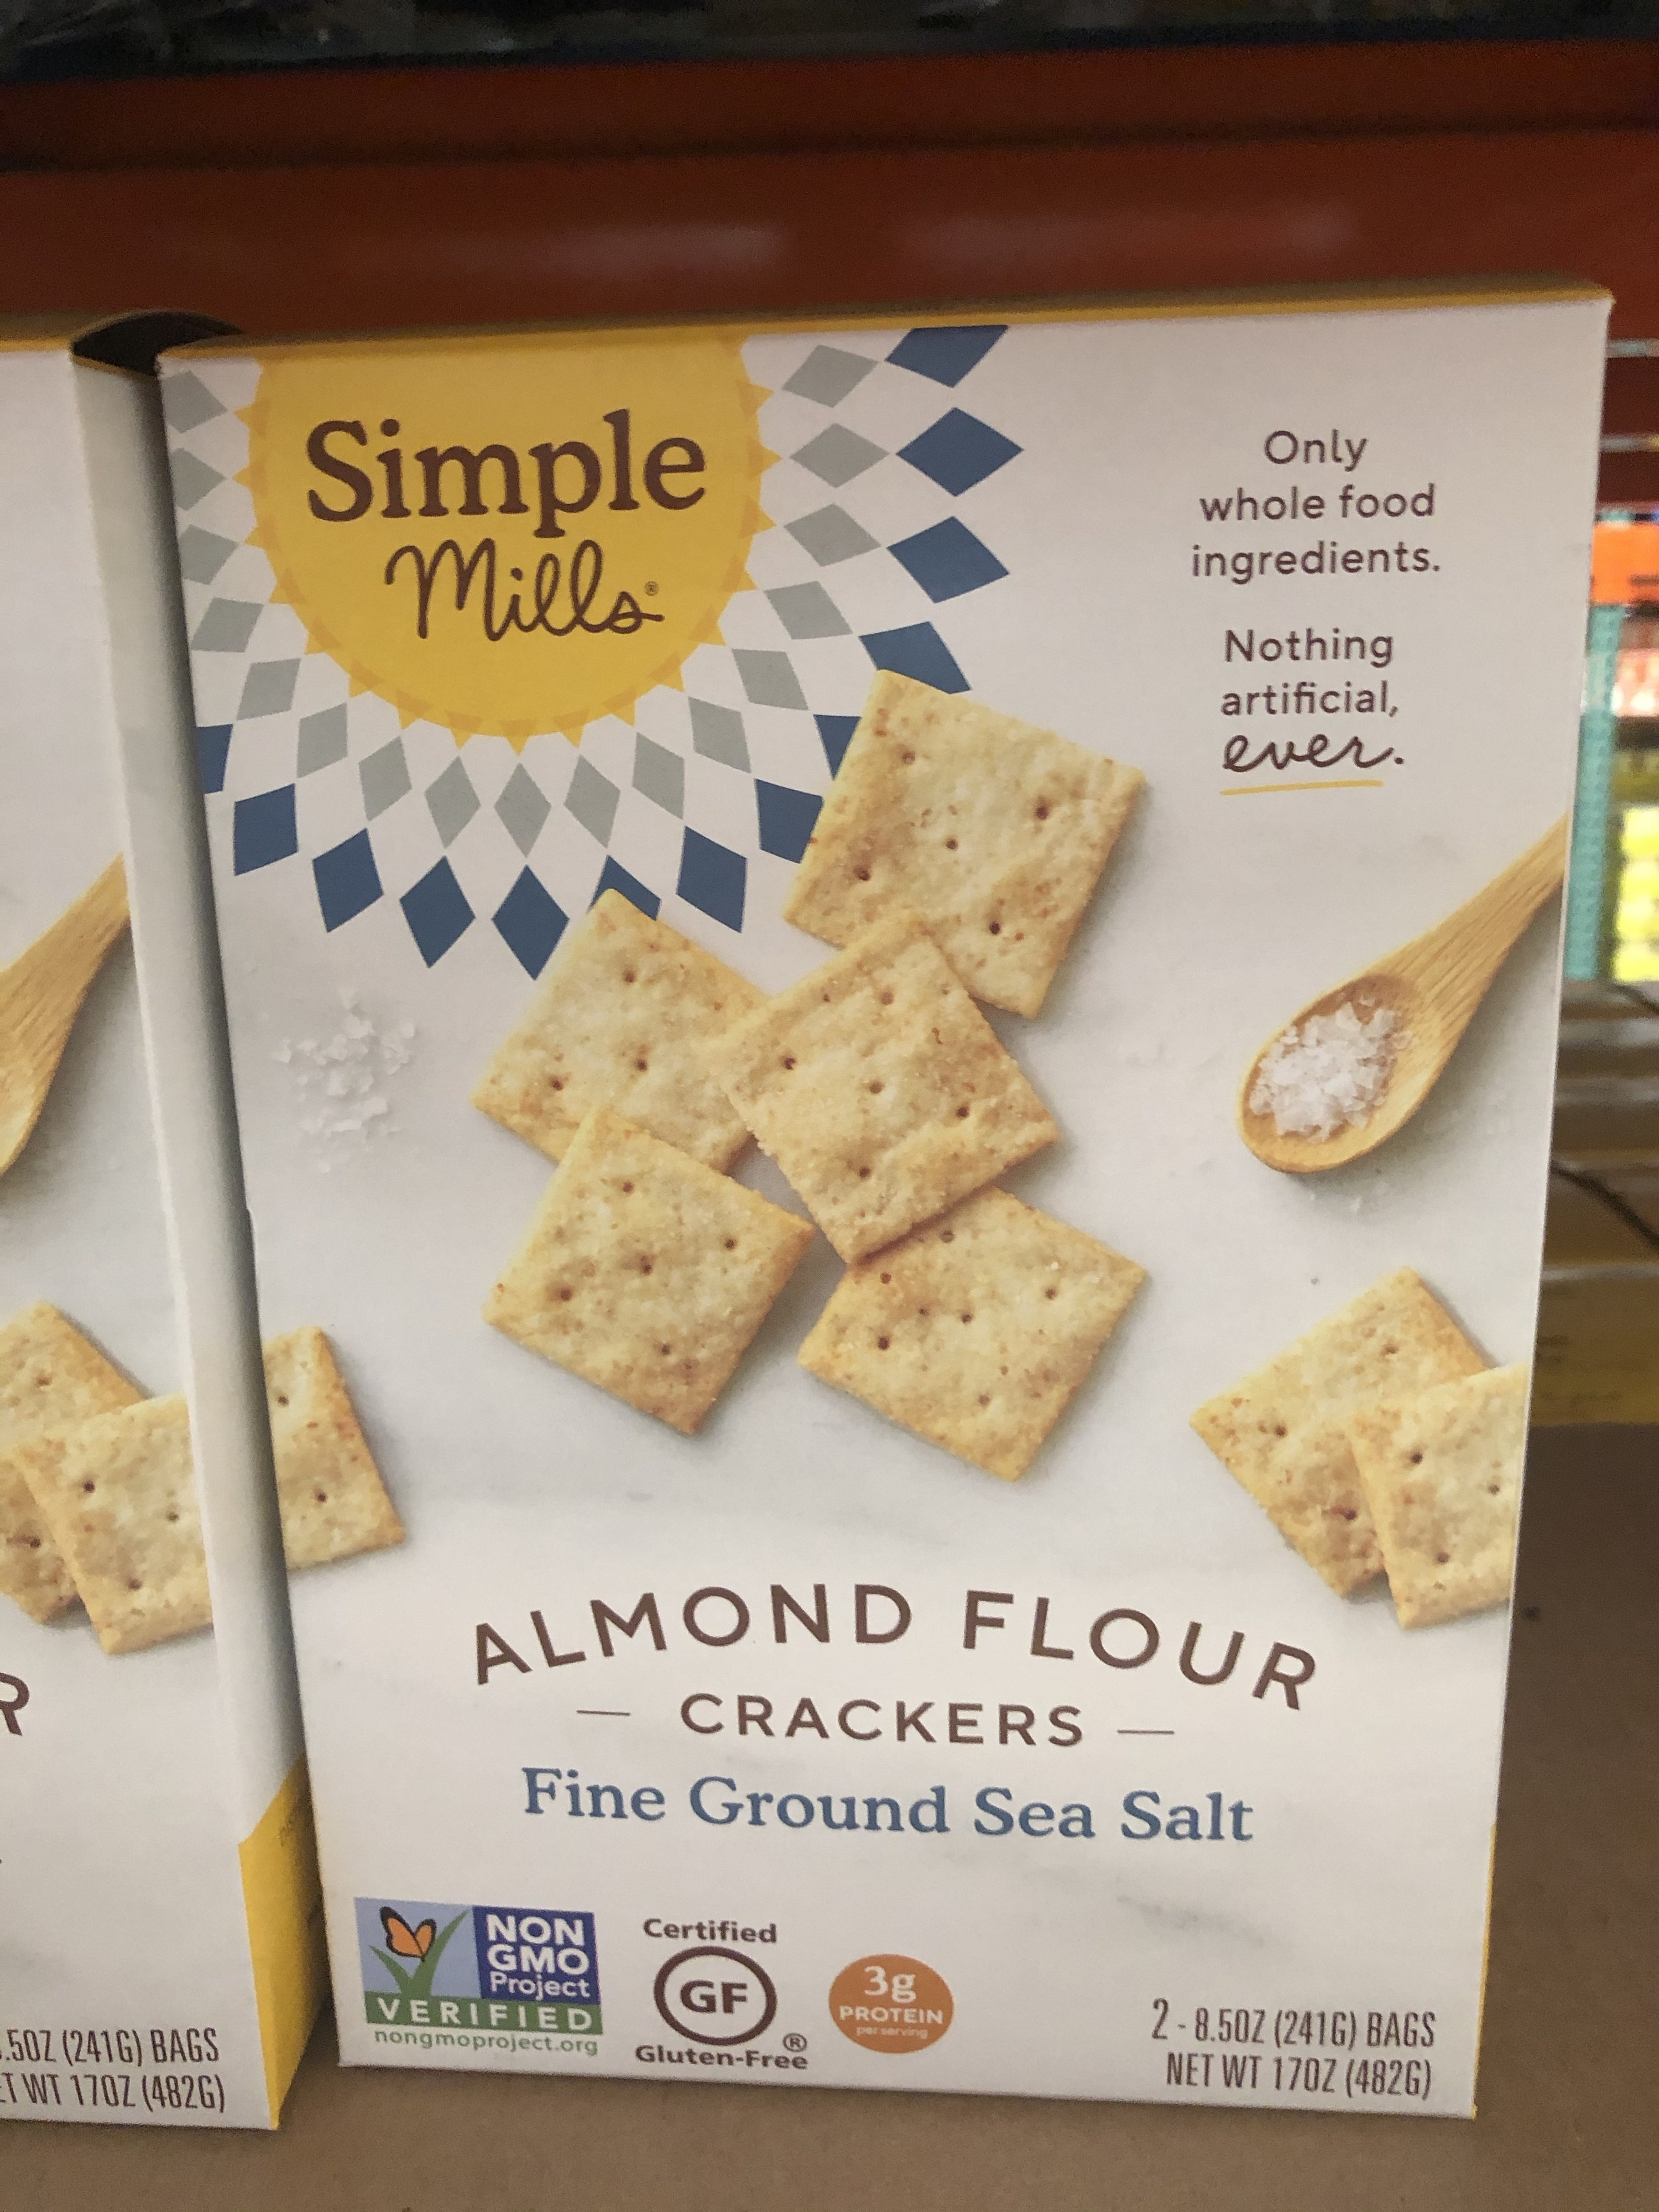 A box of Simple Mills almond flour crackers